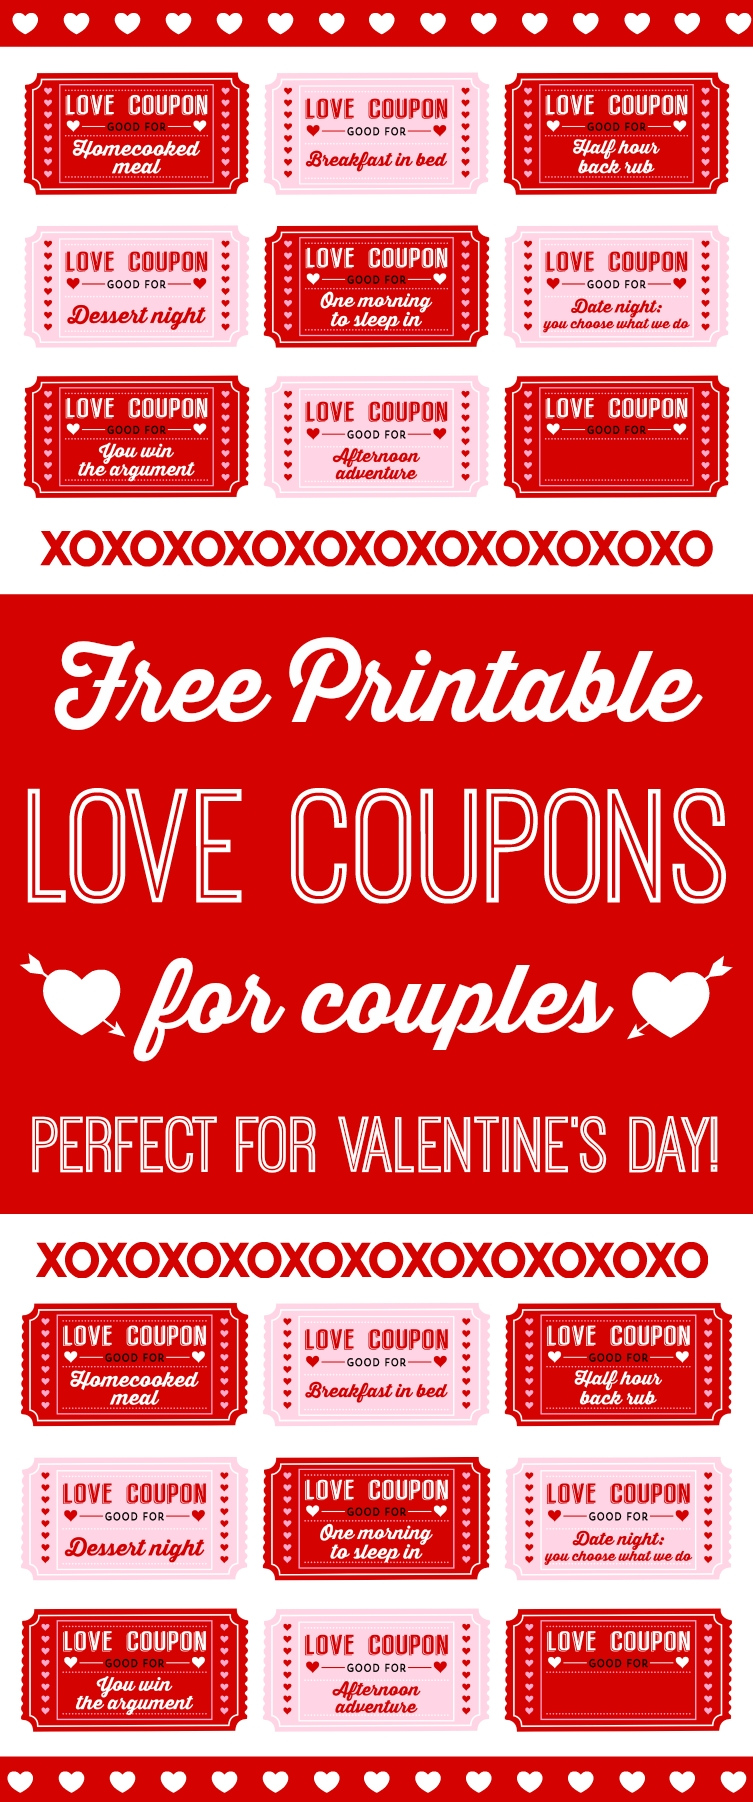 10 Attractive Valentine Coupon Book Ideas For Guys diy love coupons coupons gift and books